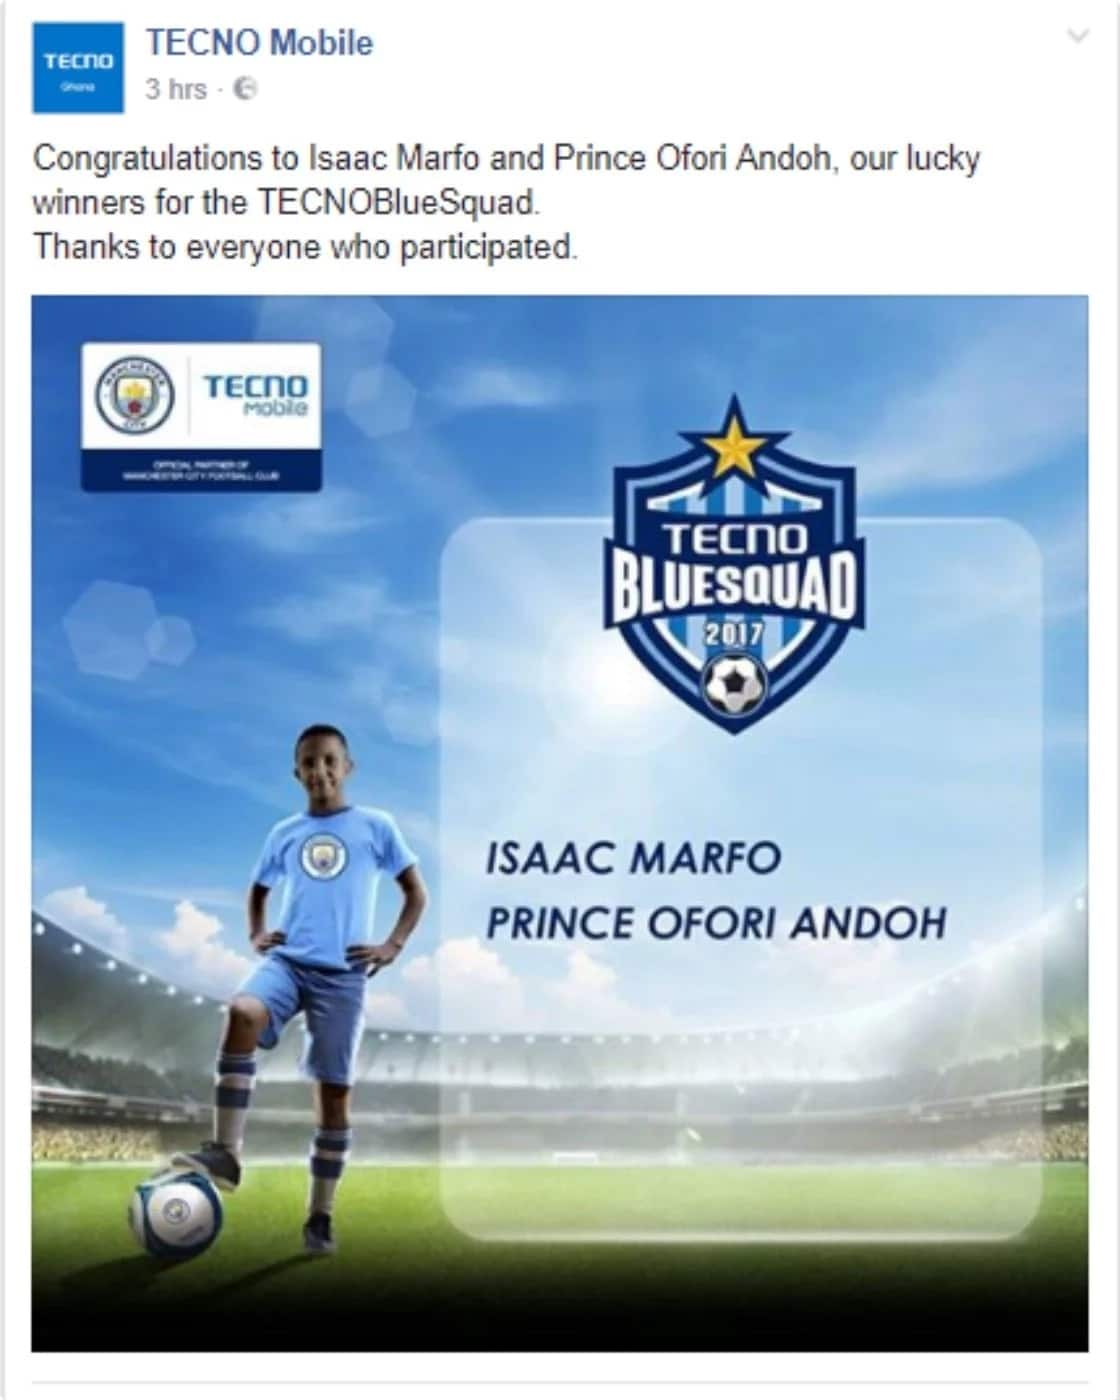 TECHNO supports two talented young Ghanaian footballers